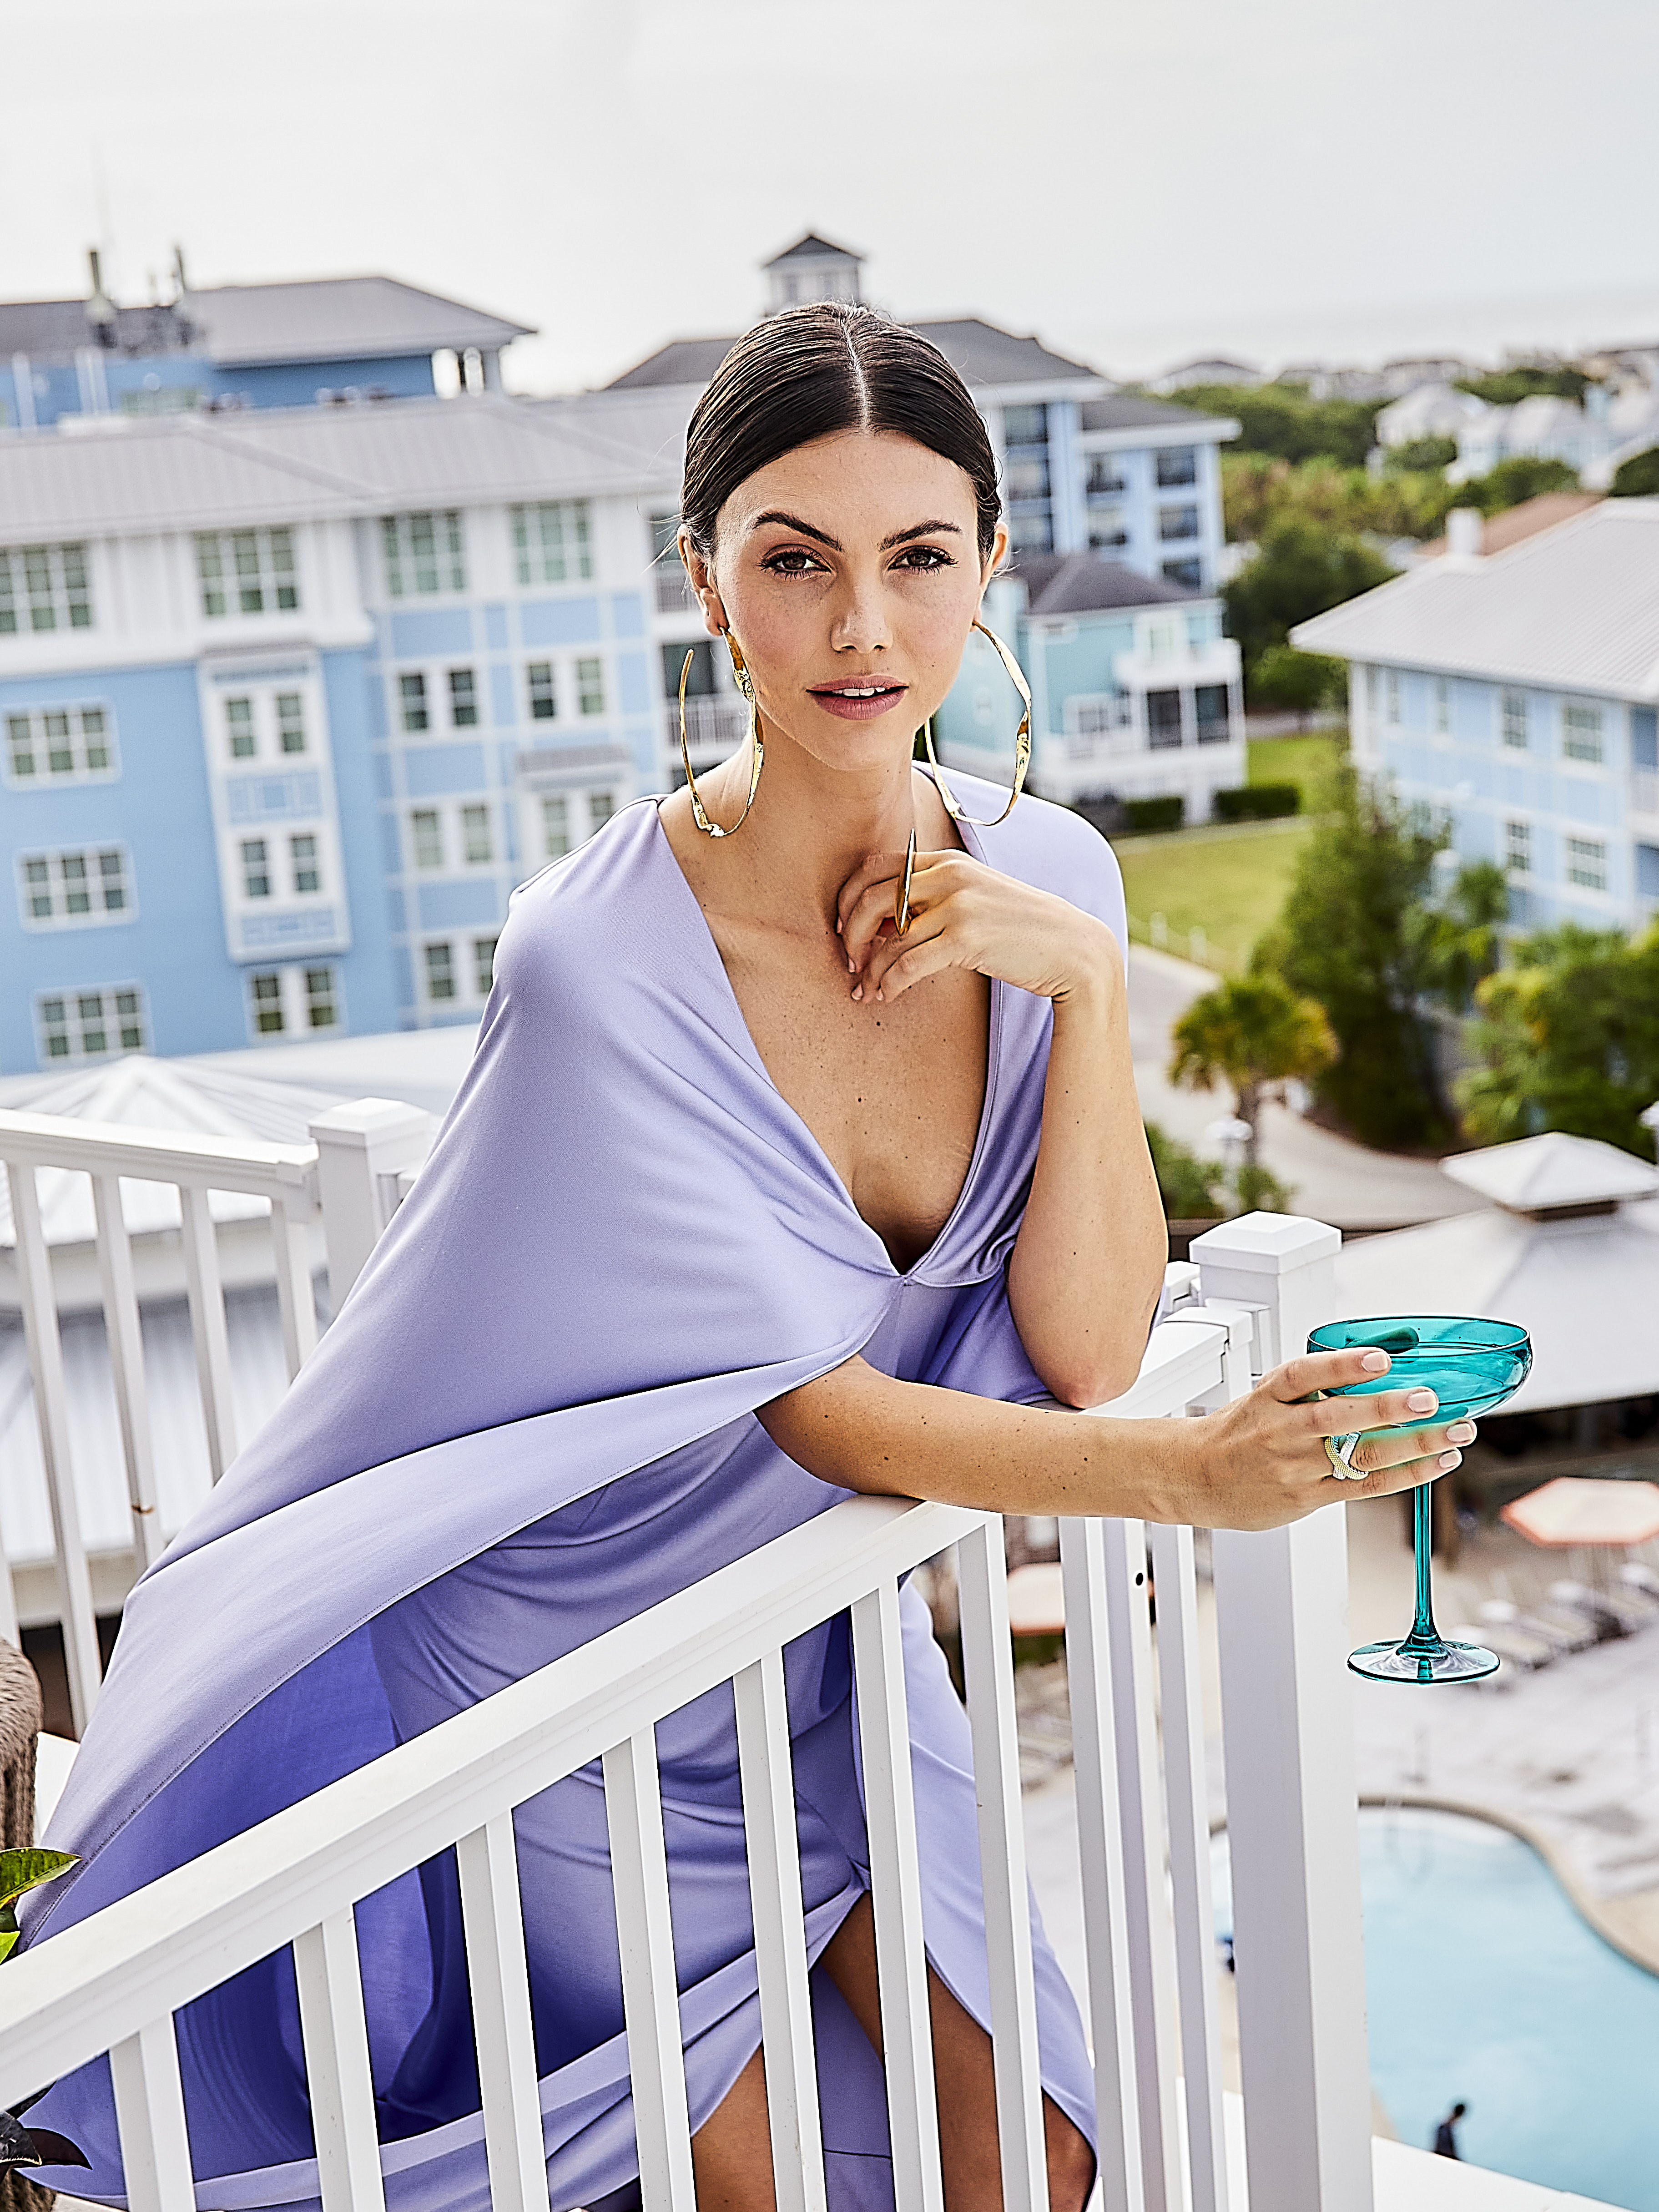 """Go With the Flow: St. John silk jersey dress, $3,495, maxi hoop earrings, $195, and sculpted double ring, $195, at St. John Boutique; Lagos pavé crossover ring, $2,500 at M.P. Demetre Jewelers; Estelle Colored Glass champagne coupe in """"emerald,"""" $33 at Gwynn's of Mount Pleasant"""